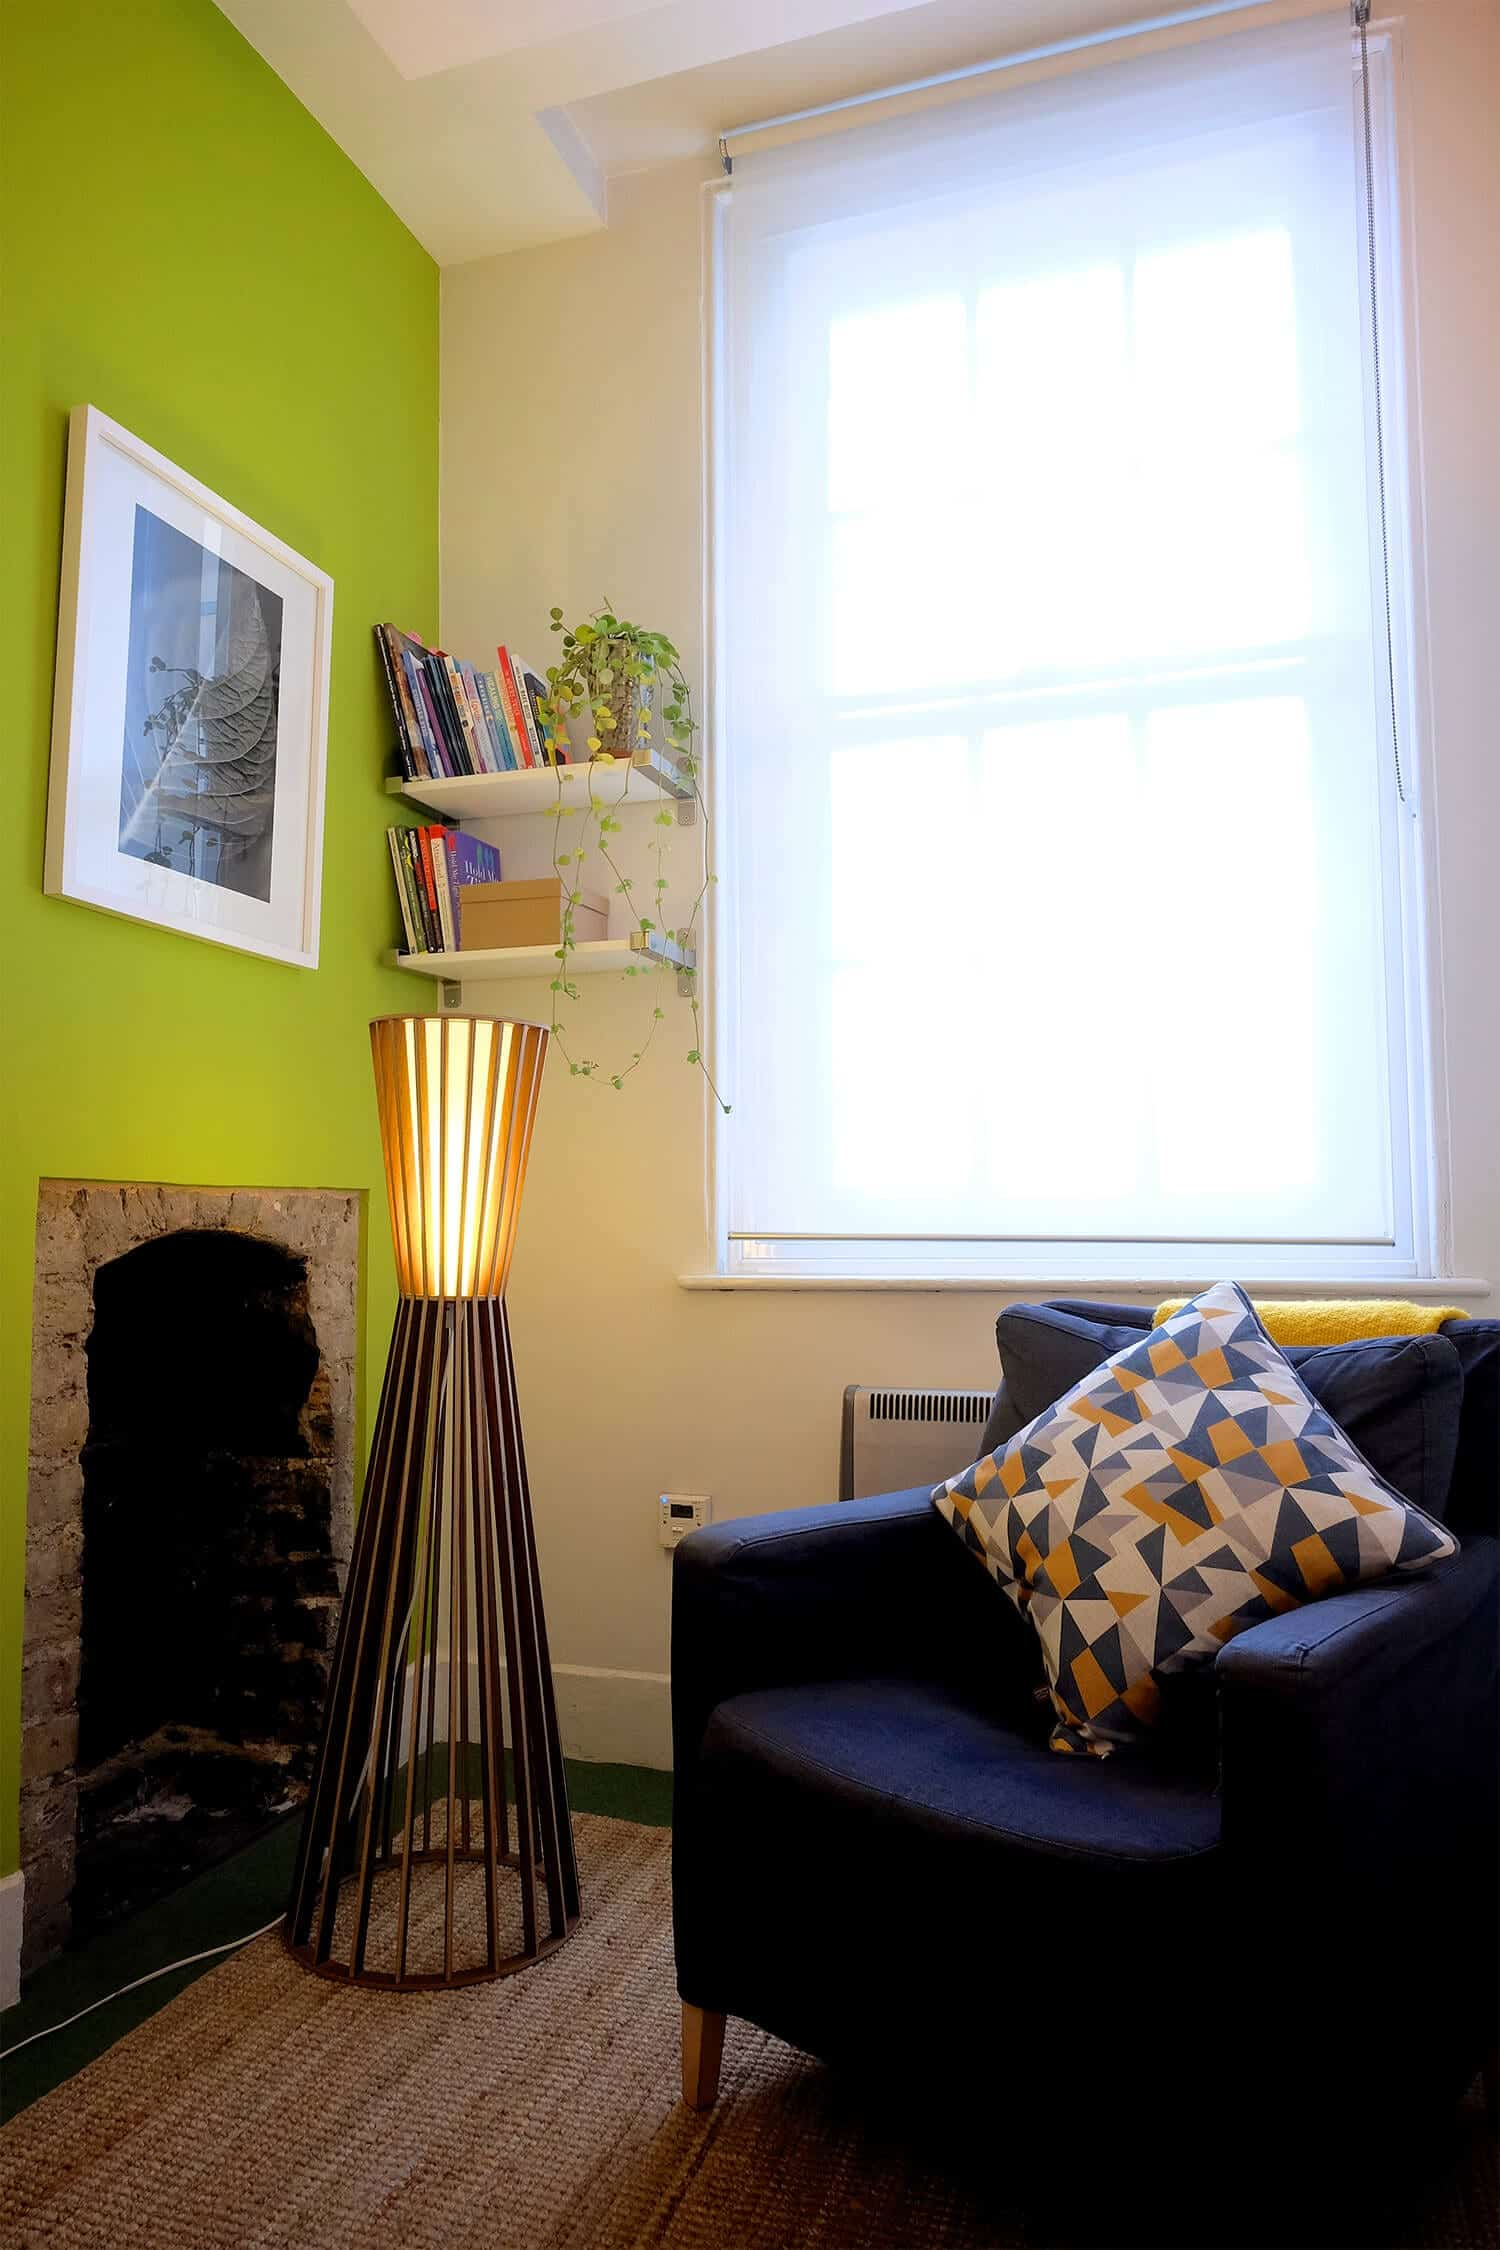 Room 2 our talking therapy room to rent for Central and East London in Bethnal Green